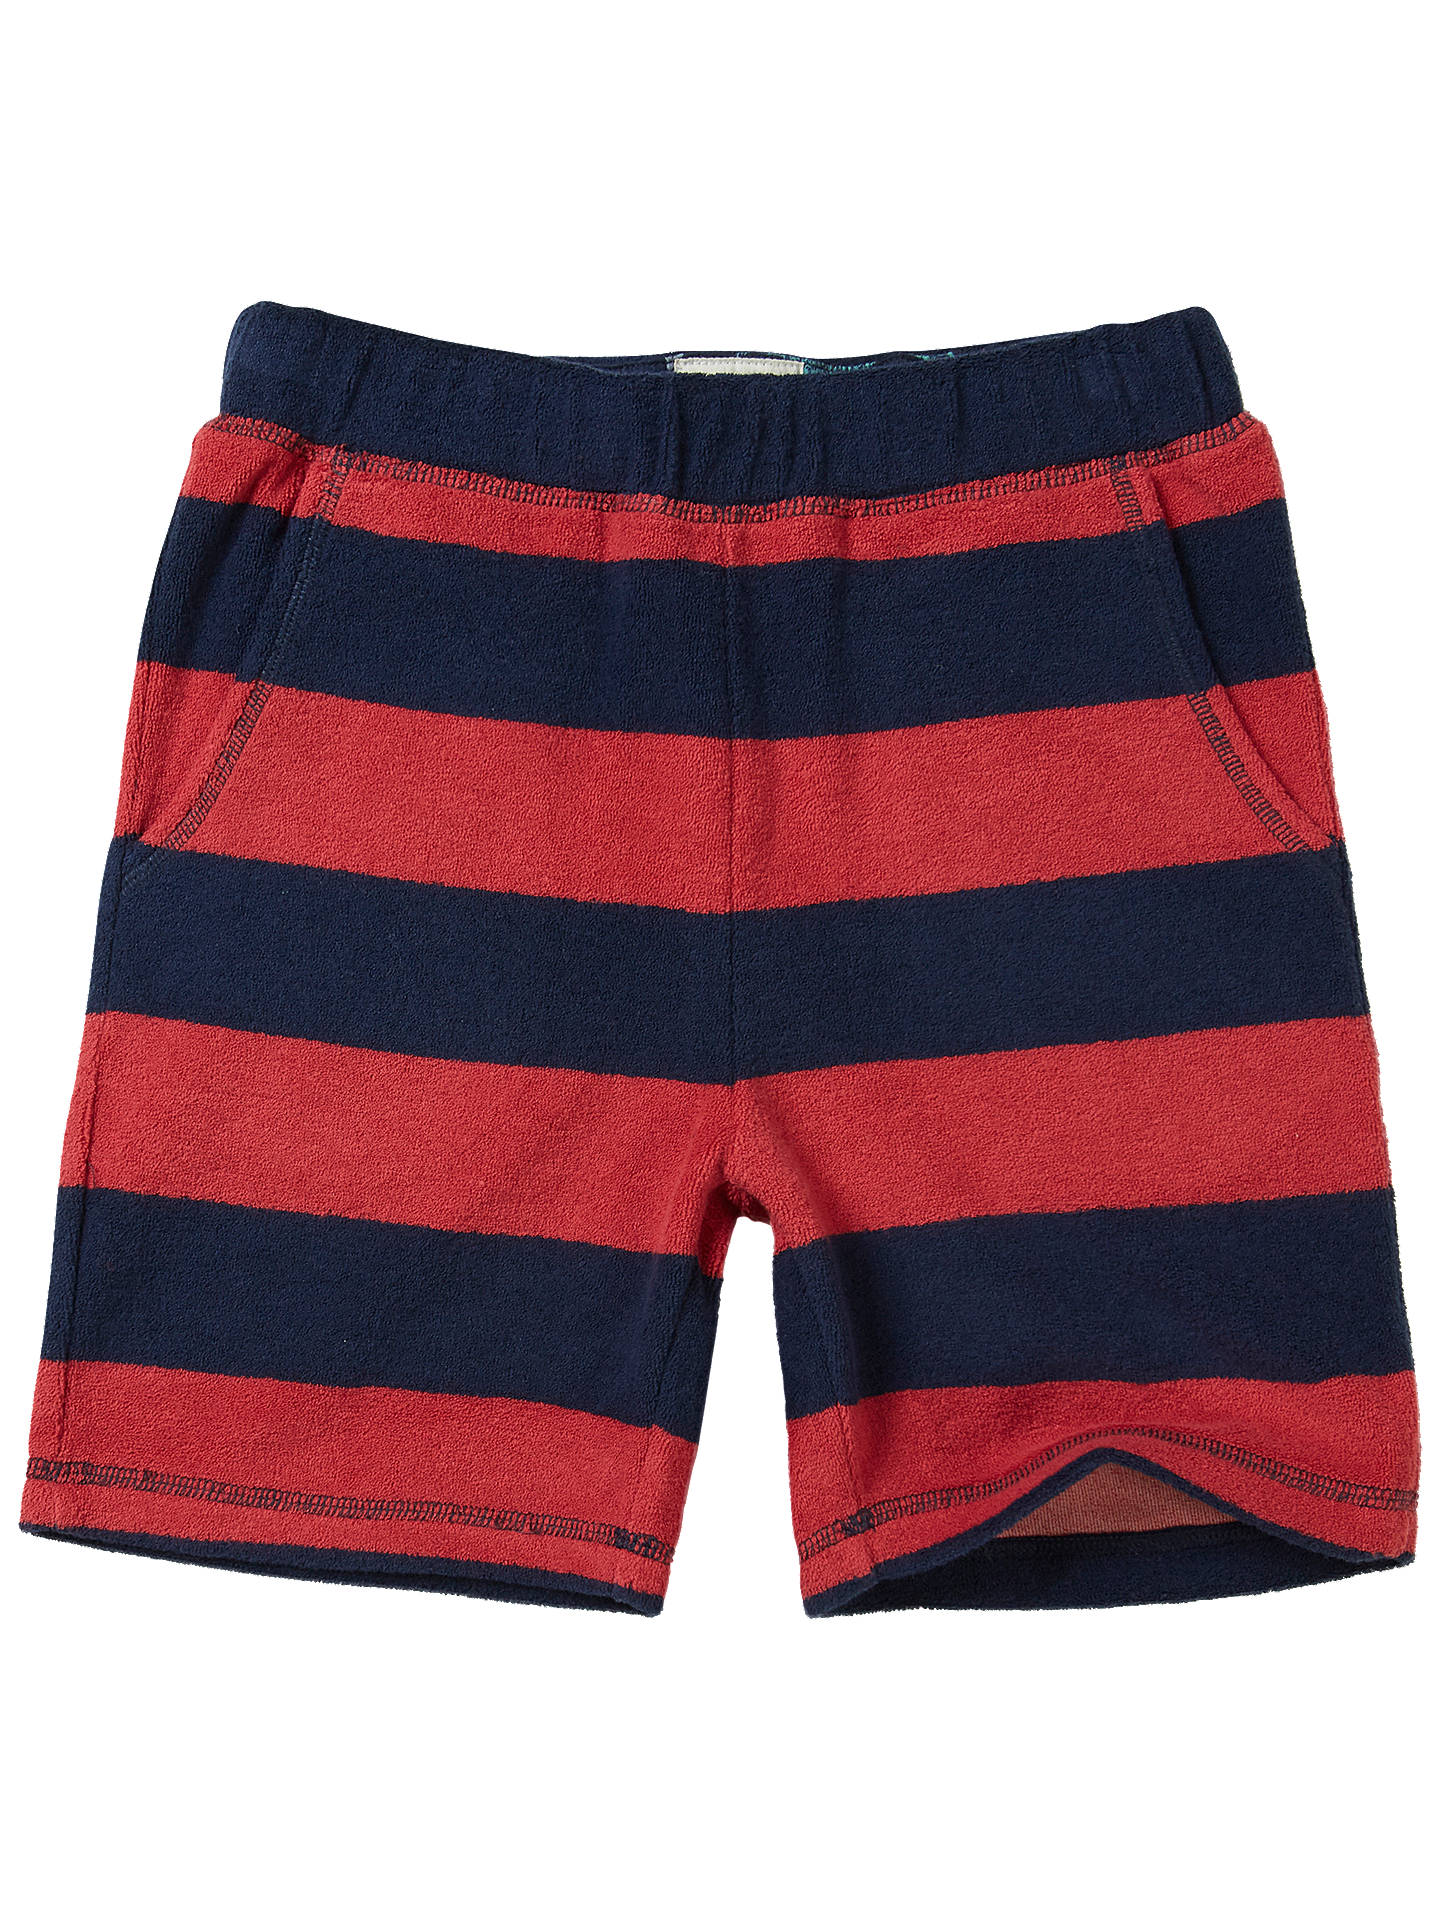 cc5f0486d9e7c BuyFat Face Boys  Stripe Shorts